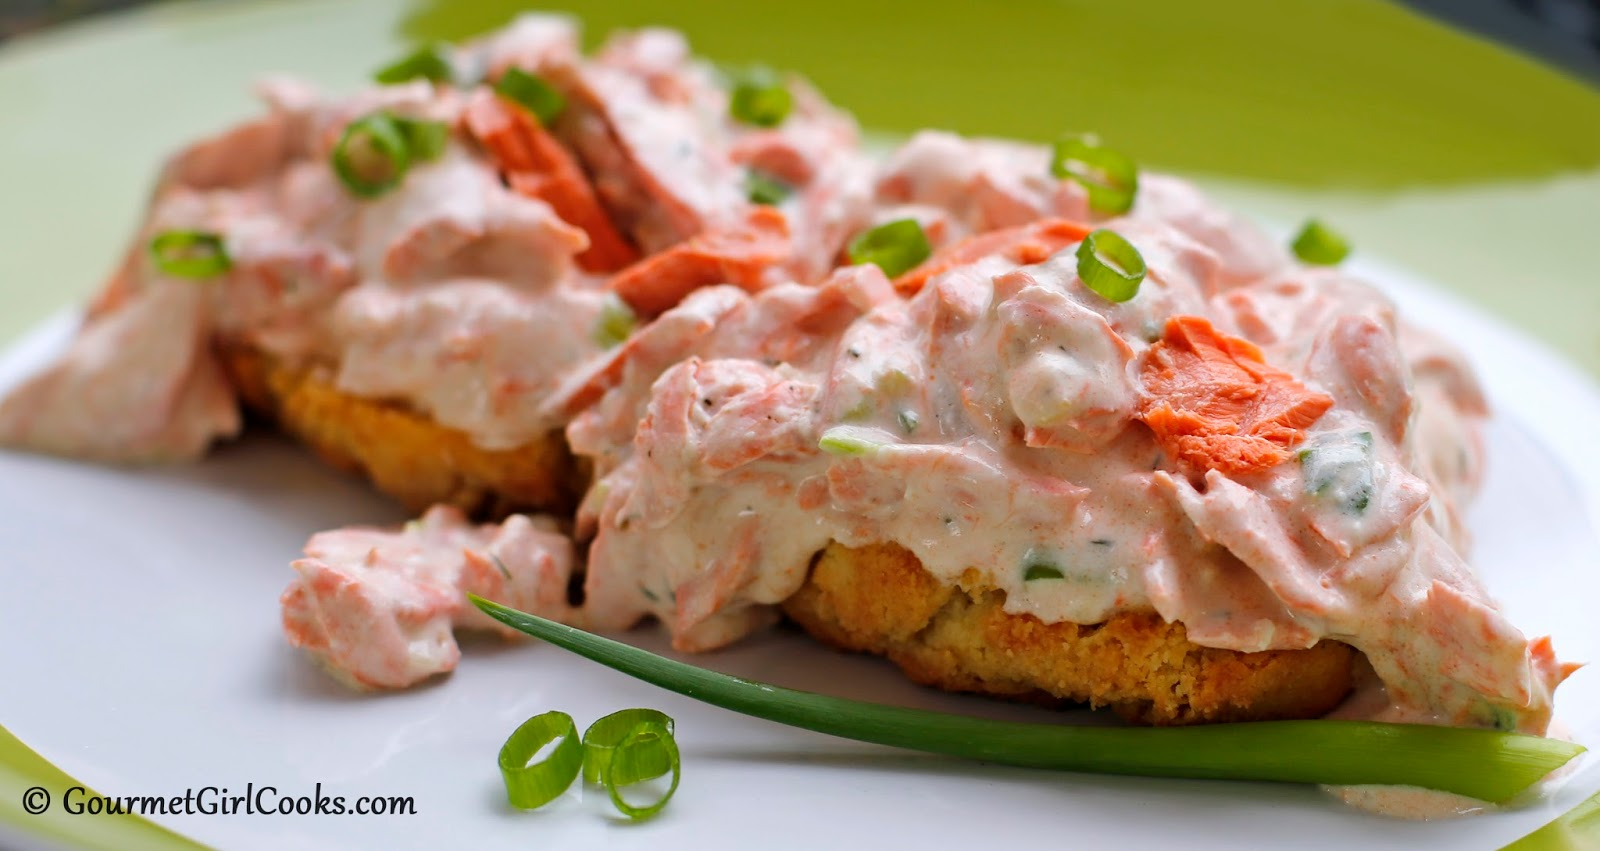 Gourmet Girl Cooks Creamed Salmon Amp Biscuits Copper